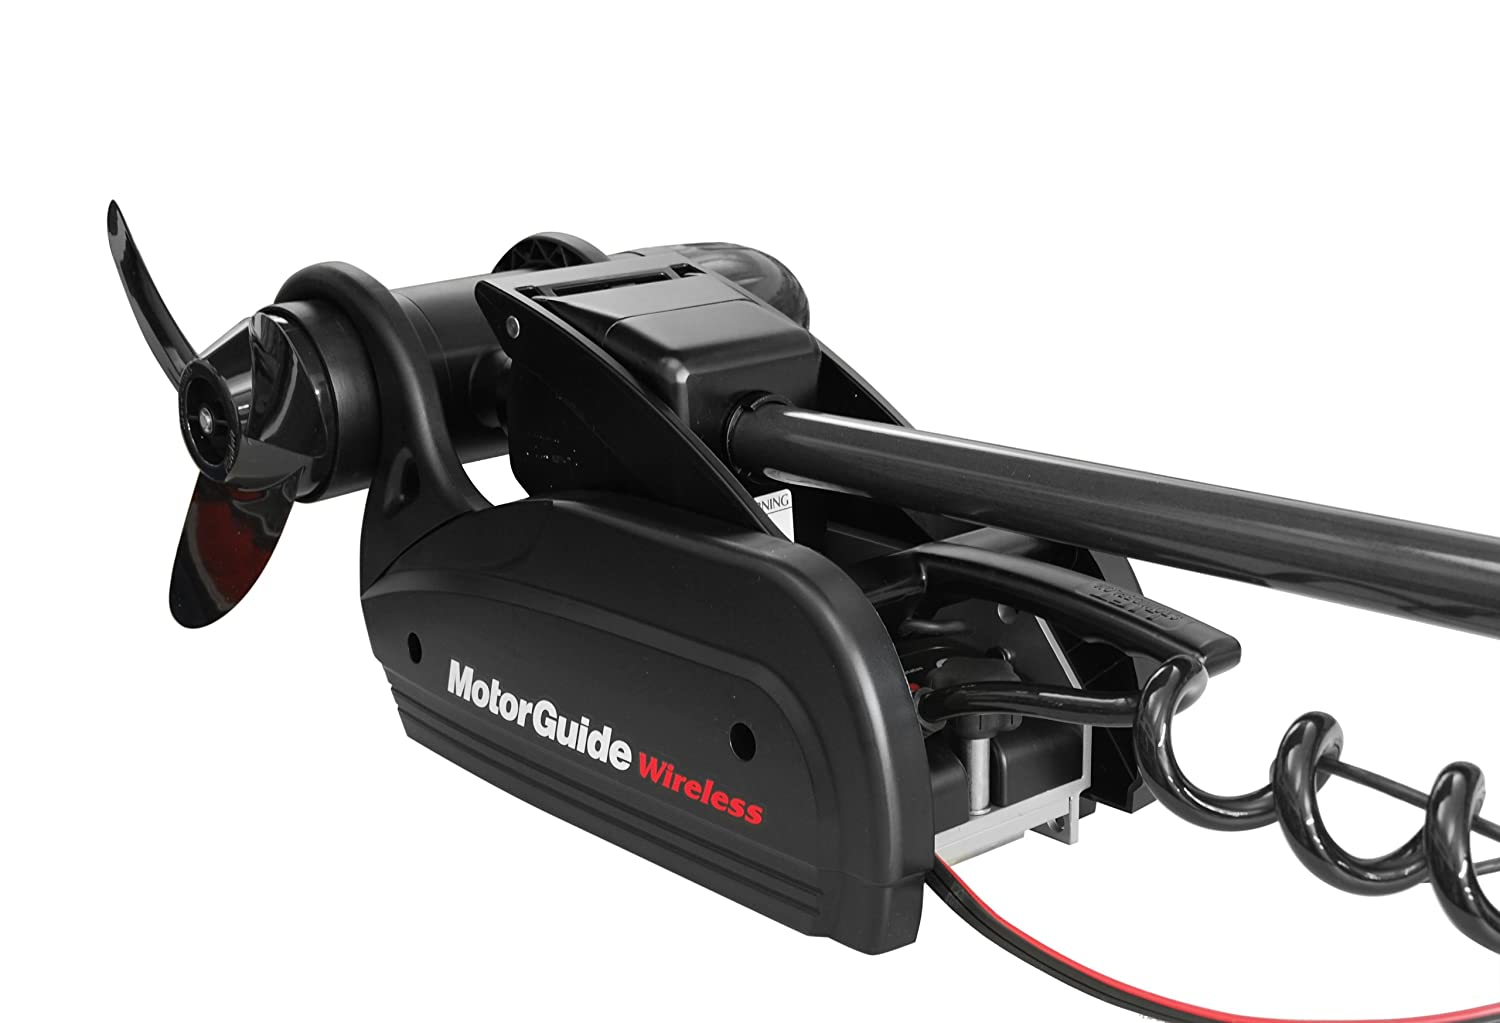 Motorguide wireless trolling motor troubleshooting for 12 volt saltwater trolling motor